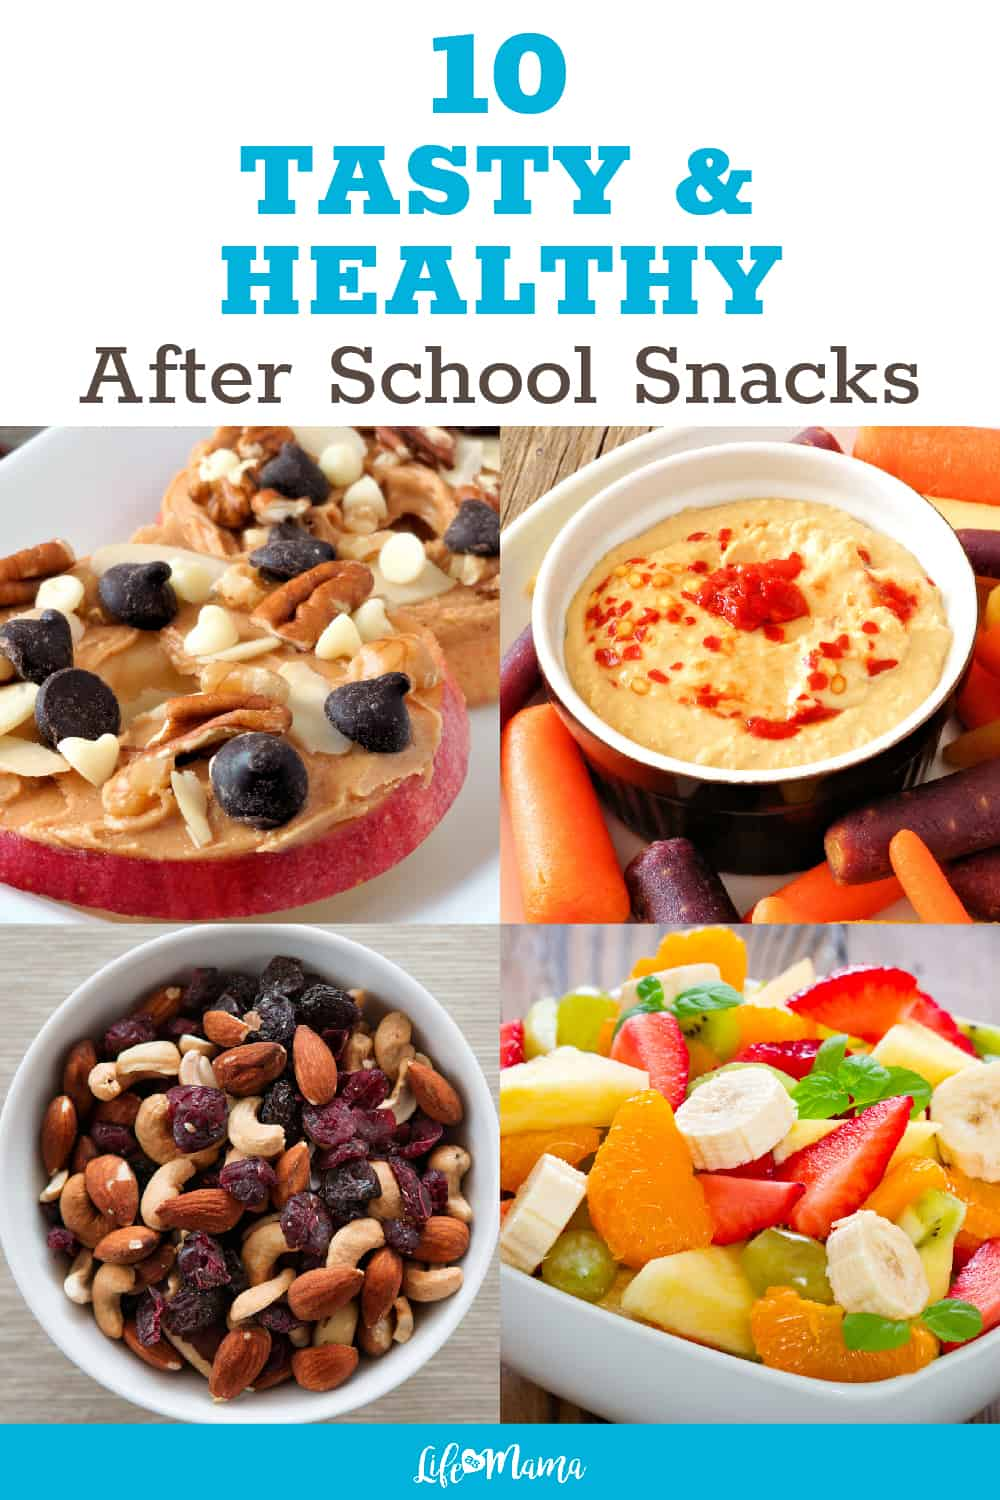 10 Tasty & Healthy After School Snacks-02-01